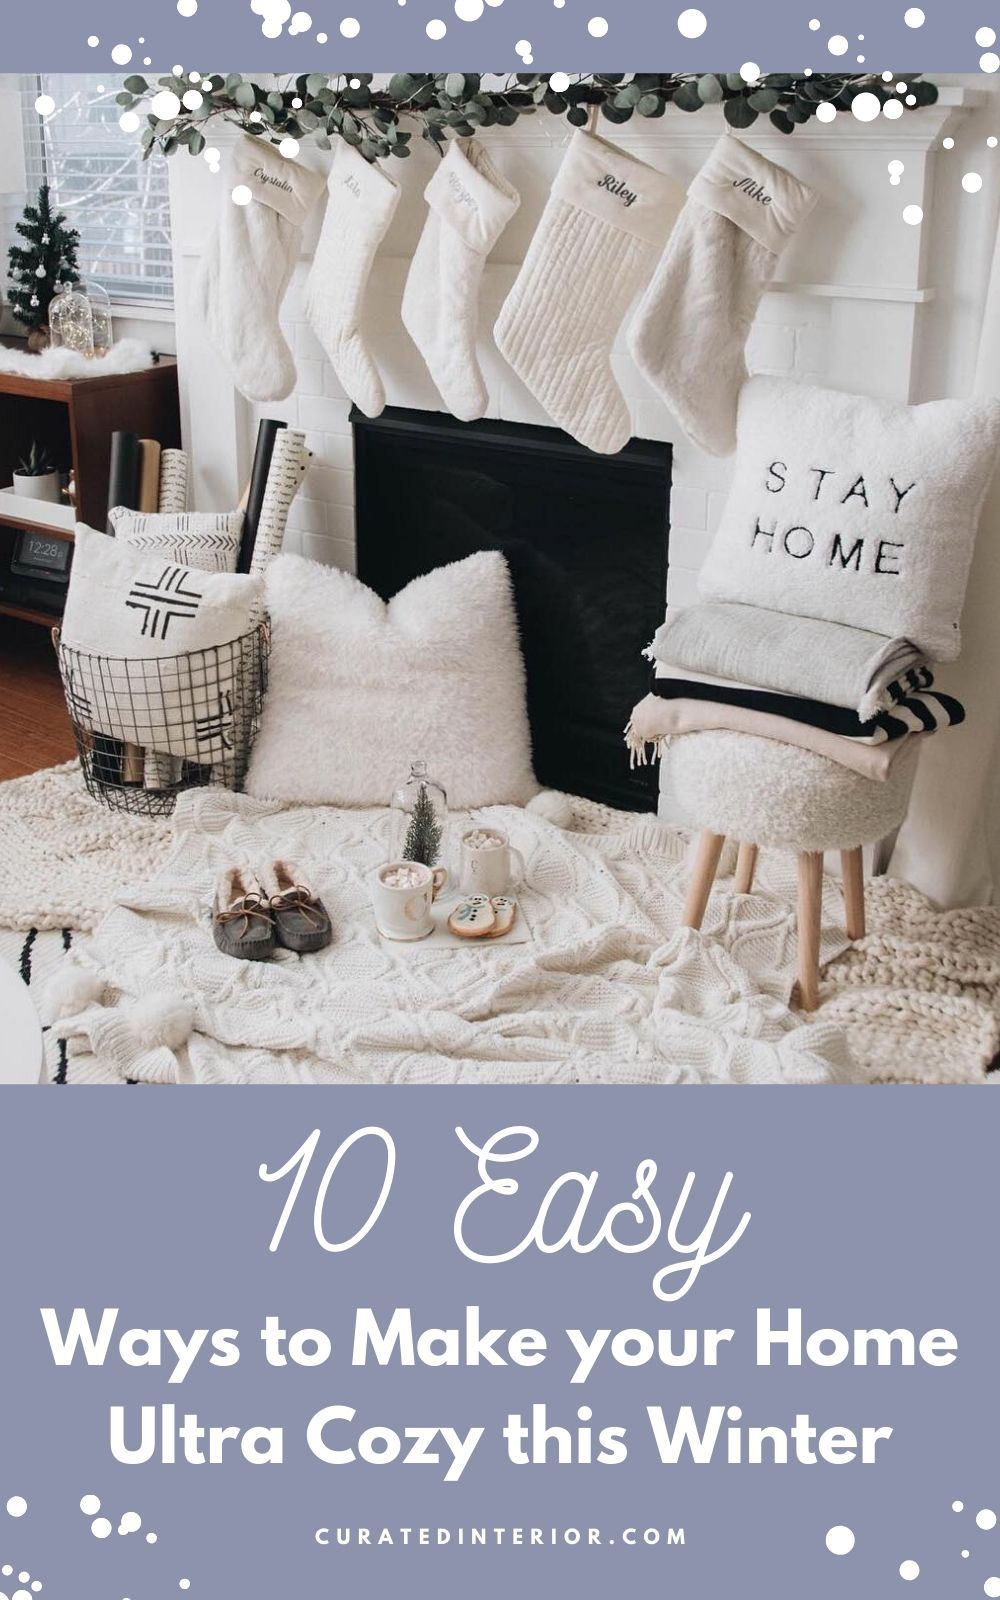 10 Easy Ways to Make Your Home Ultra Cozy This Winter